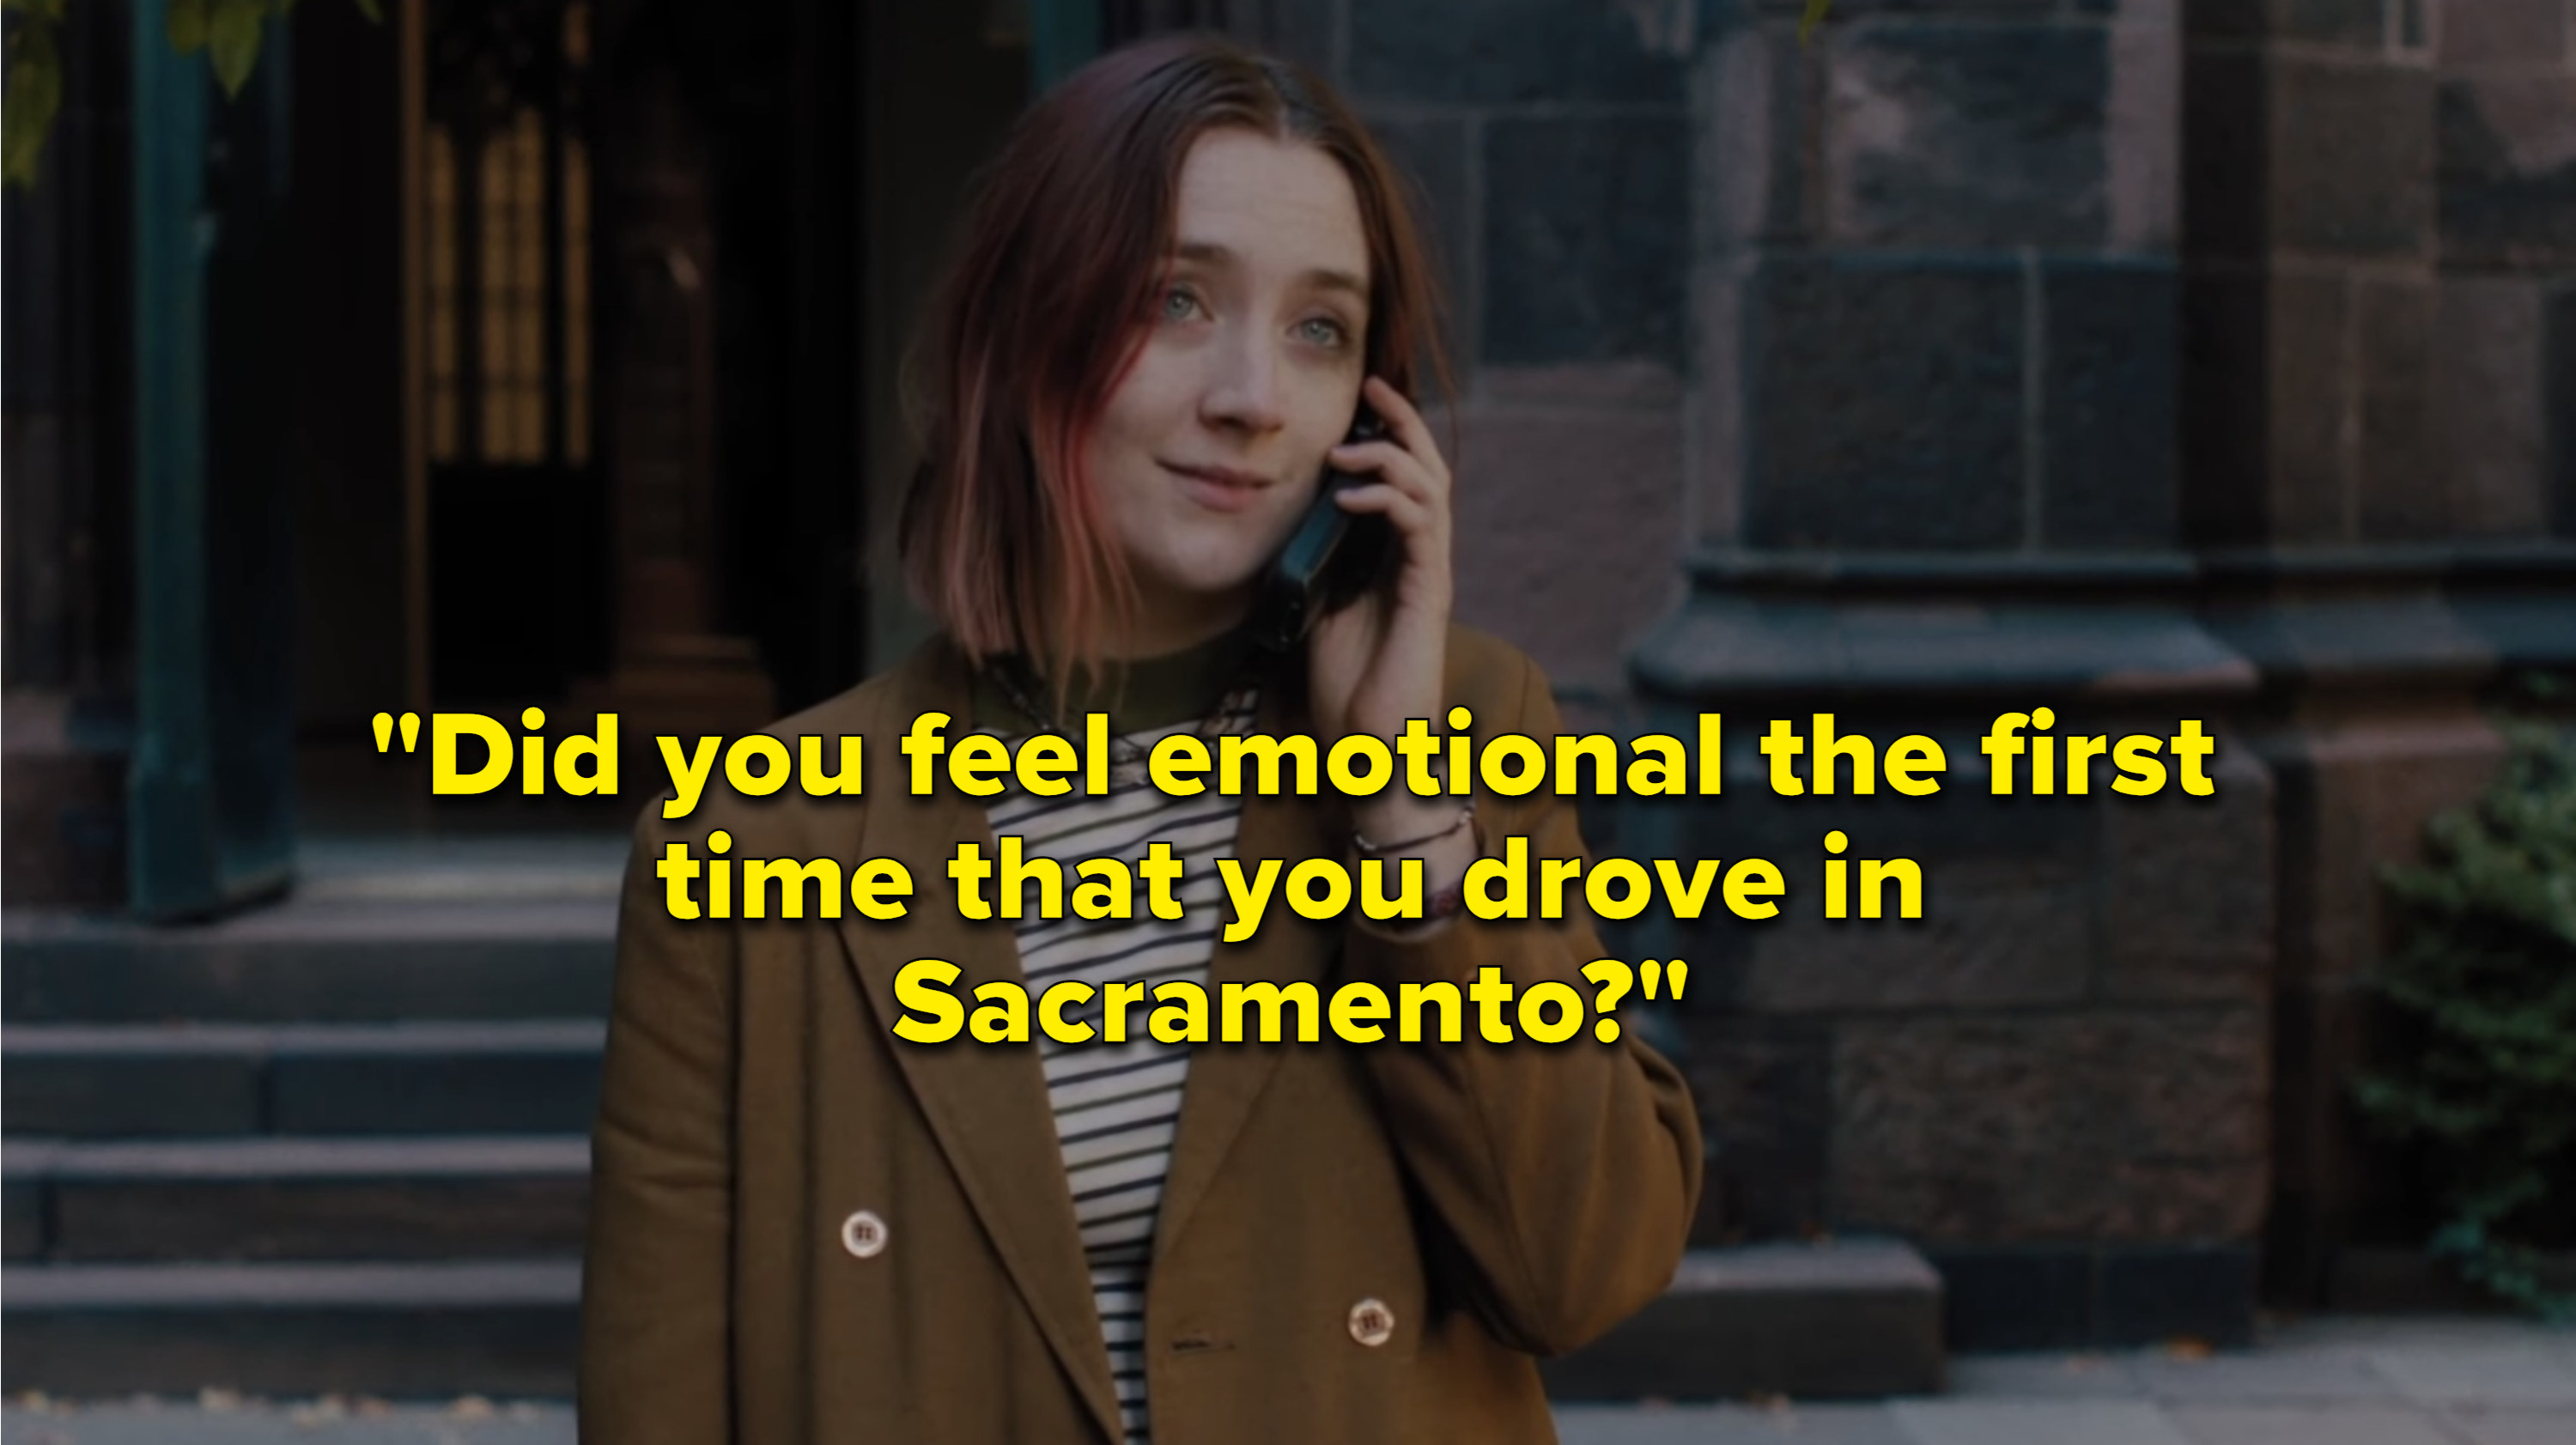 Ladybird leaving her mom a voicemail